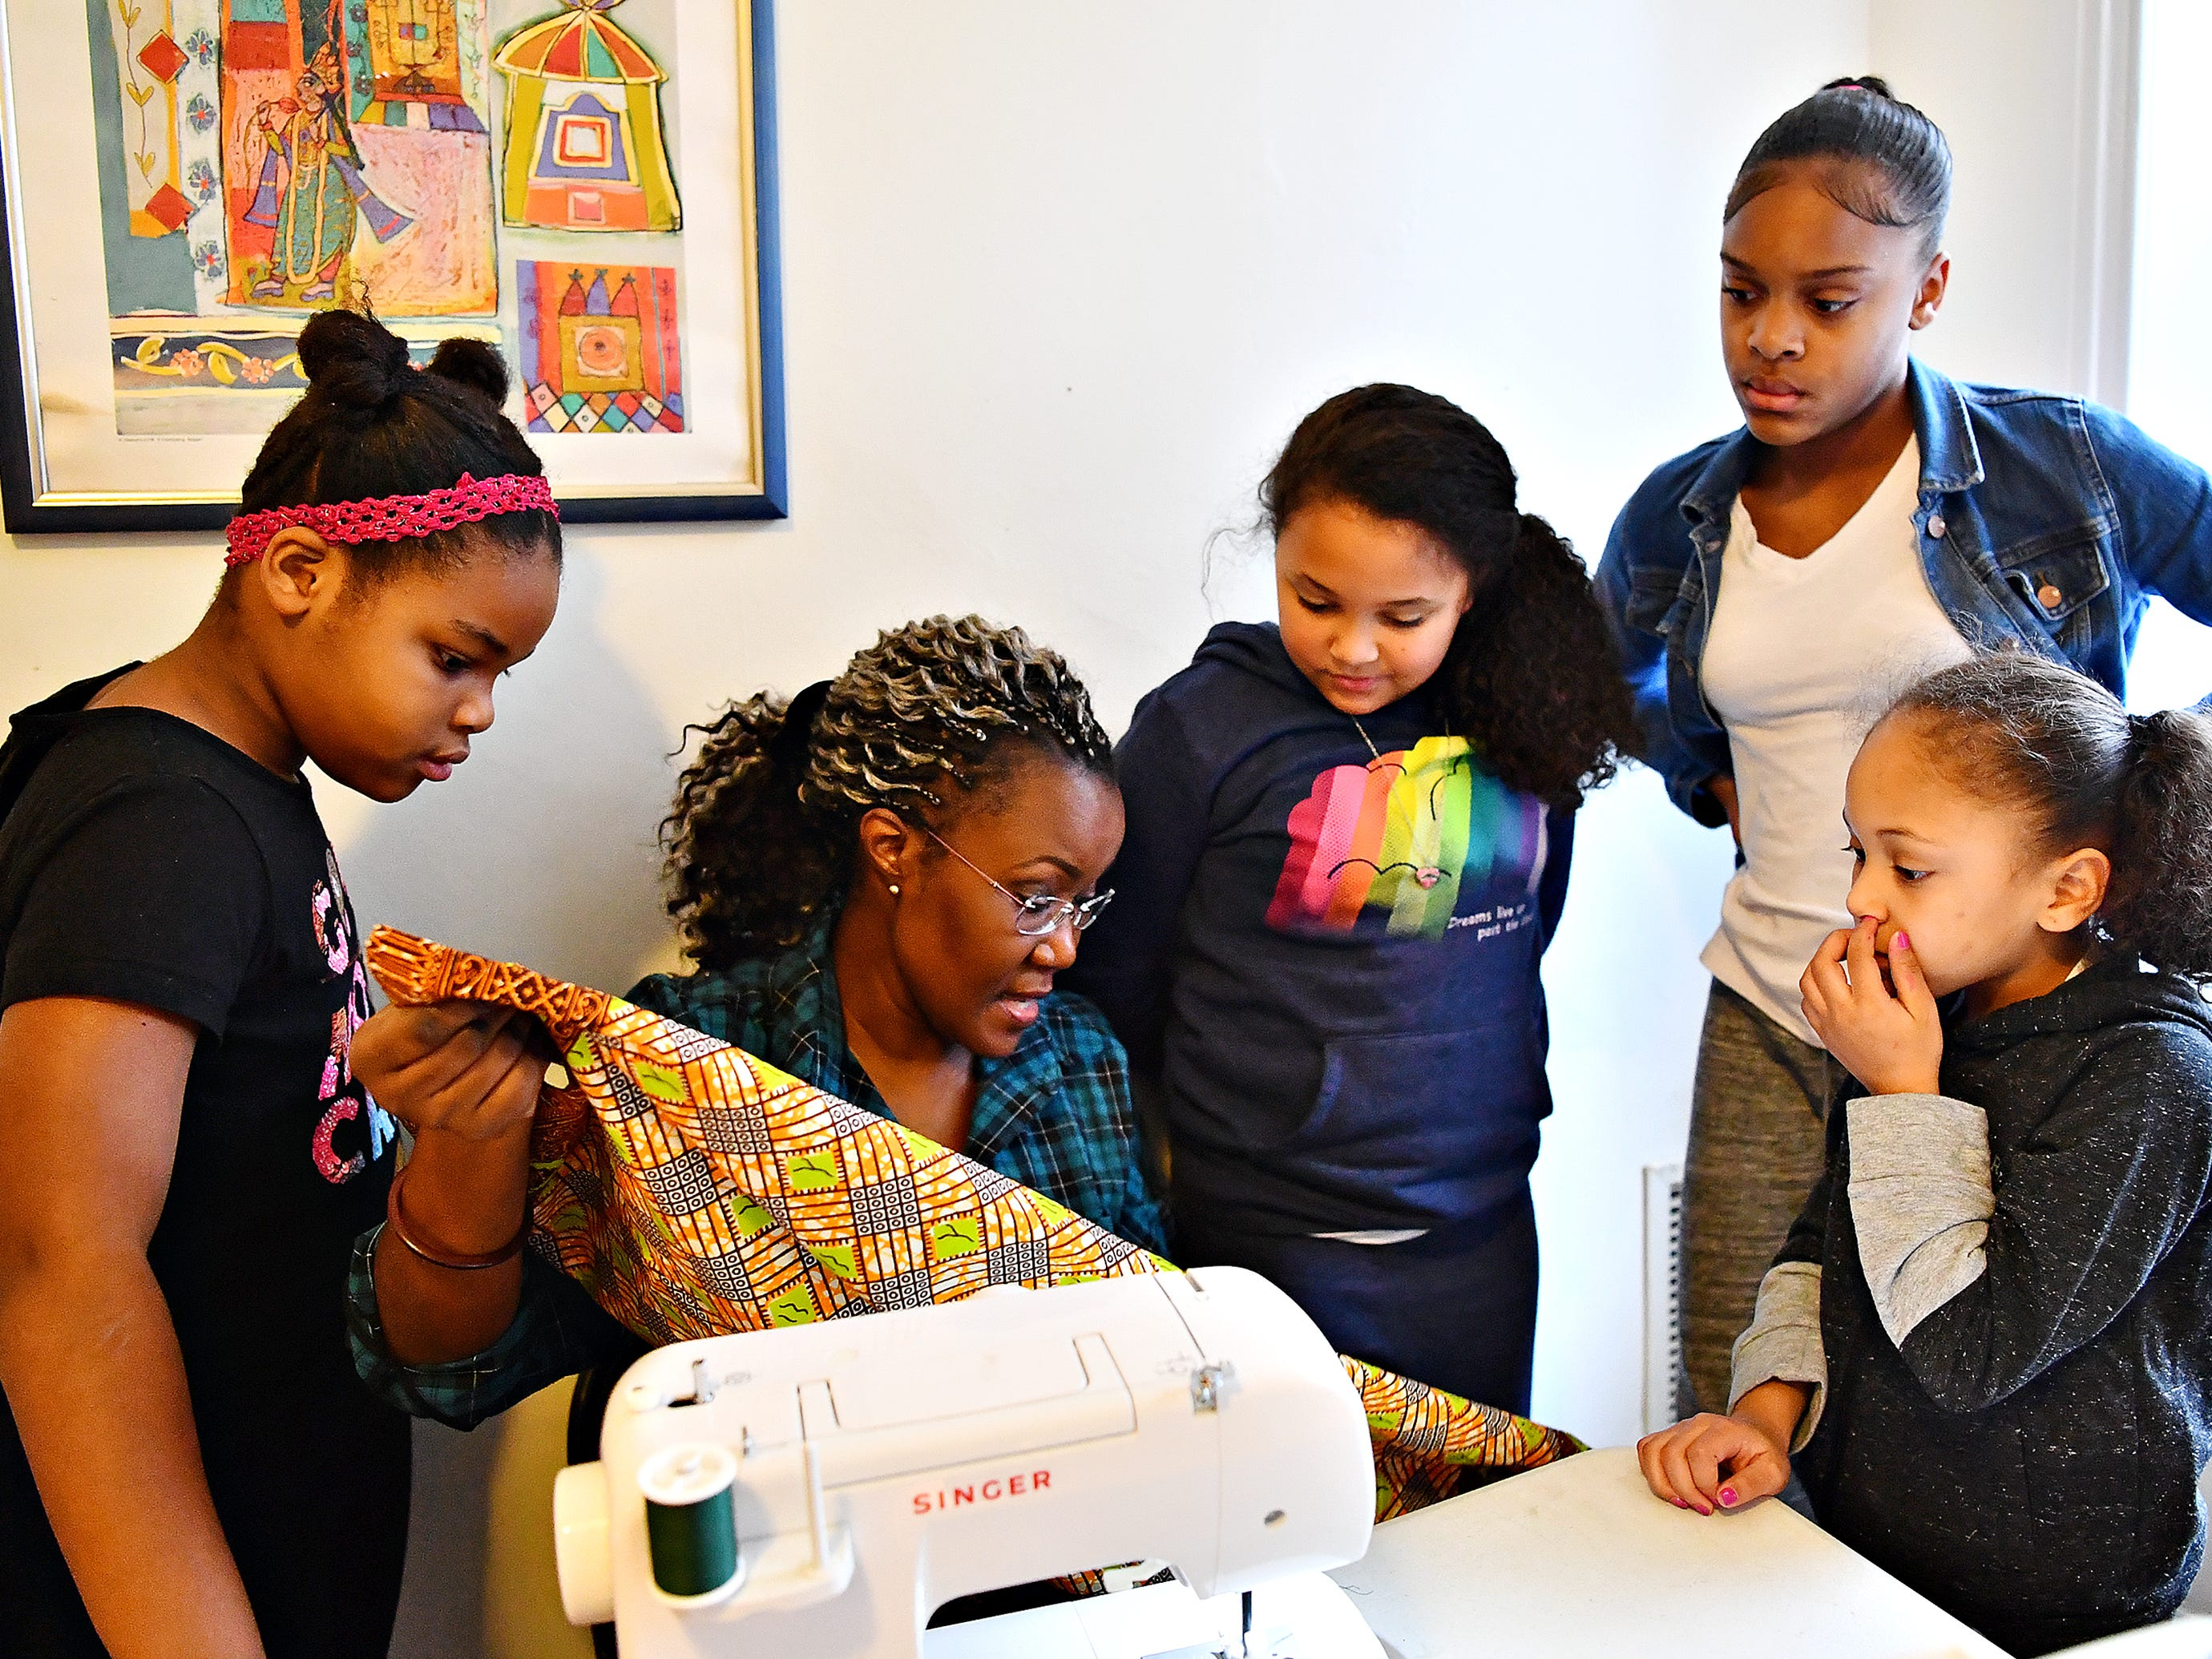 From left, Maliah Shabazz, 8, of West York borough, Victoria Kageni-Woodard, Ariana Kraft, 9, Mikya Holley, 11, and Jalaya Williams, 6, all of York City, discuss stitching the seams of a pillow while Kageni-Woodard leads a sewing workshop at her store, Gusa by Victoria, in York City, Saturday, Jan. 5, 2019. Dawn J. Sagert photo